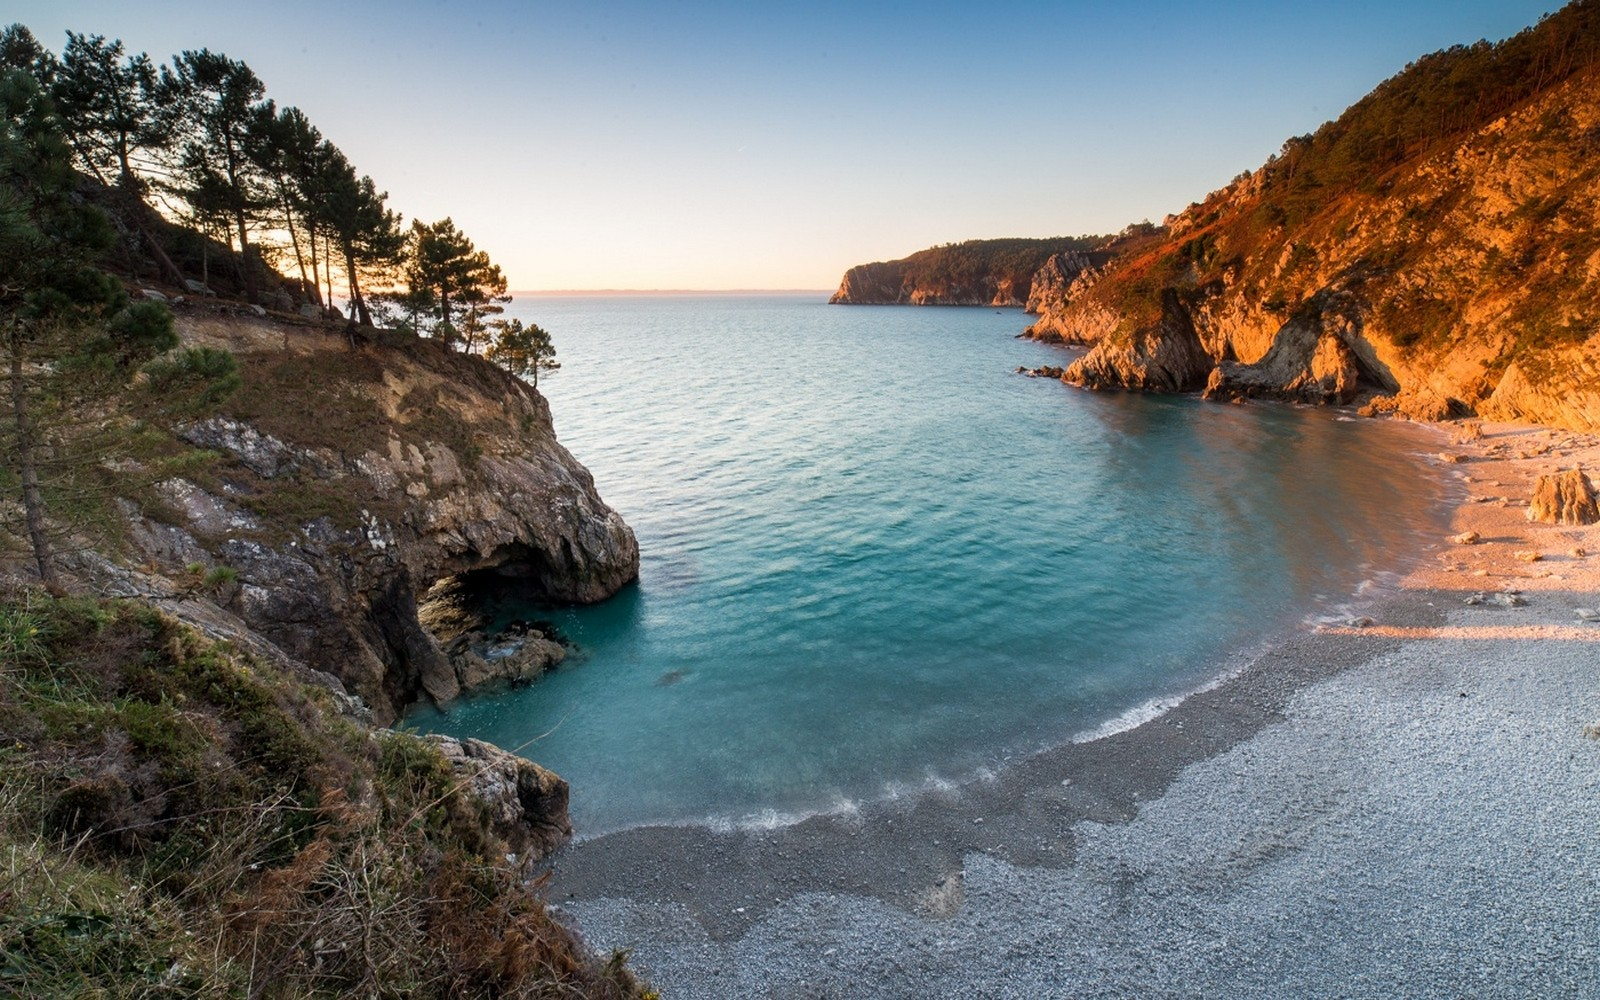 Nature Landscape Beach Sunset Sea Trees Cave Hills Virgin Islands Coves Water Turquoise 1600x1000